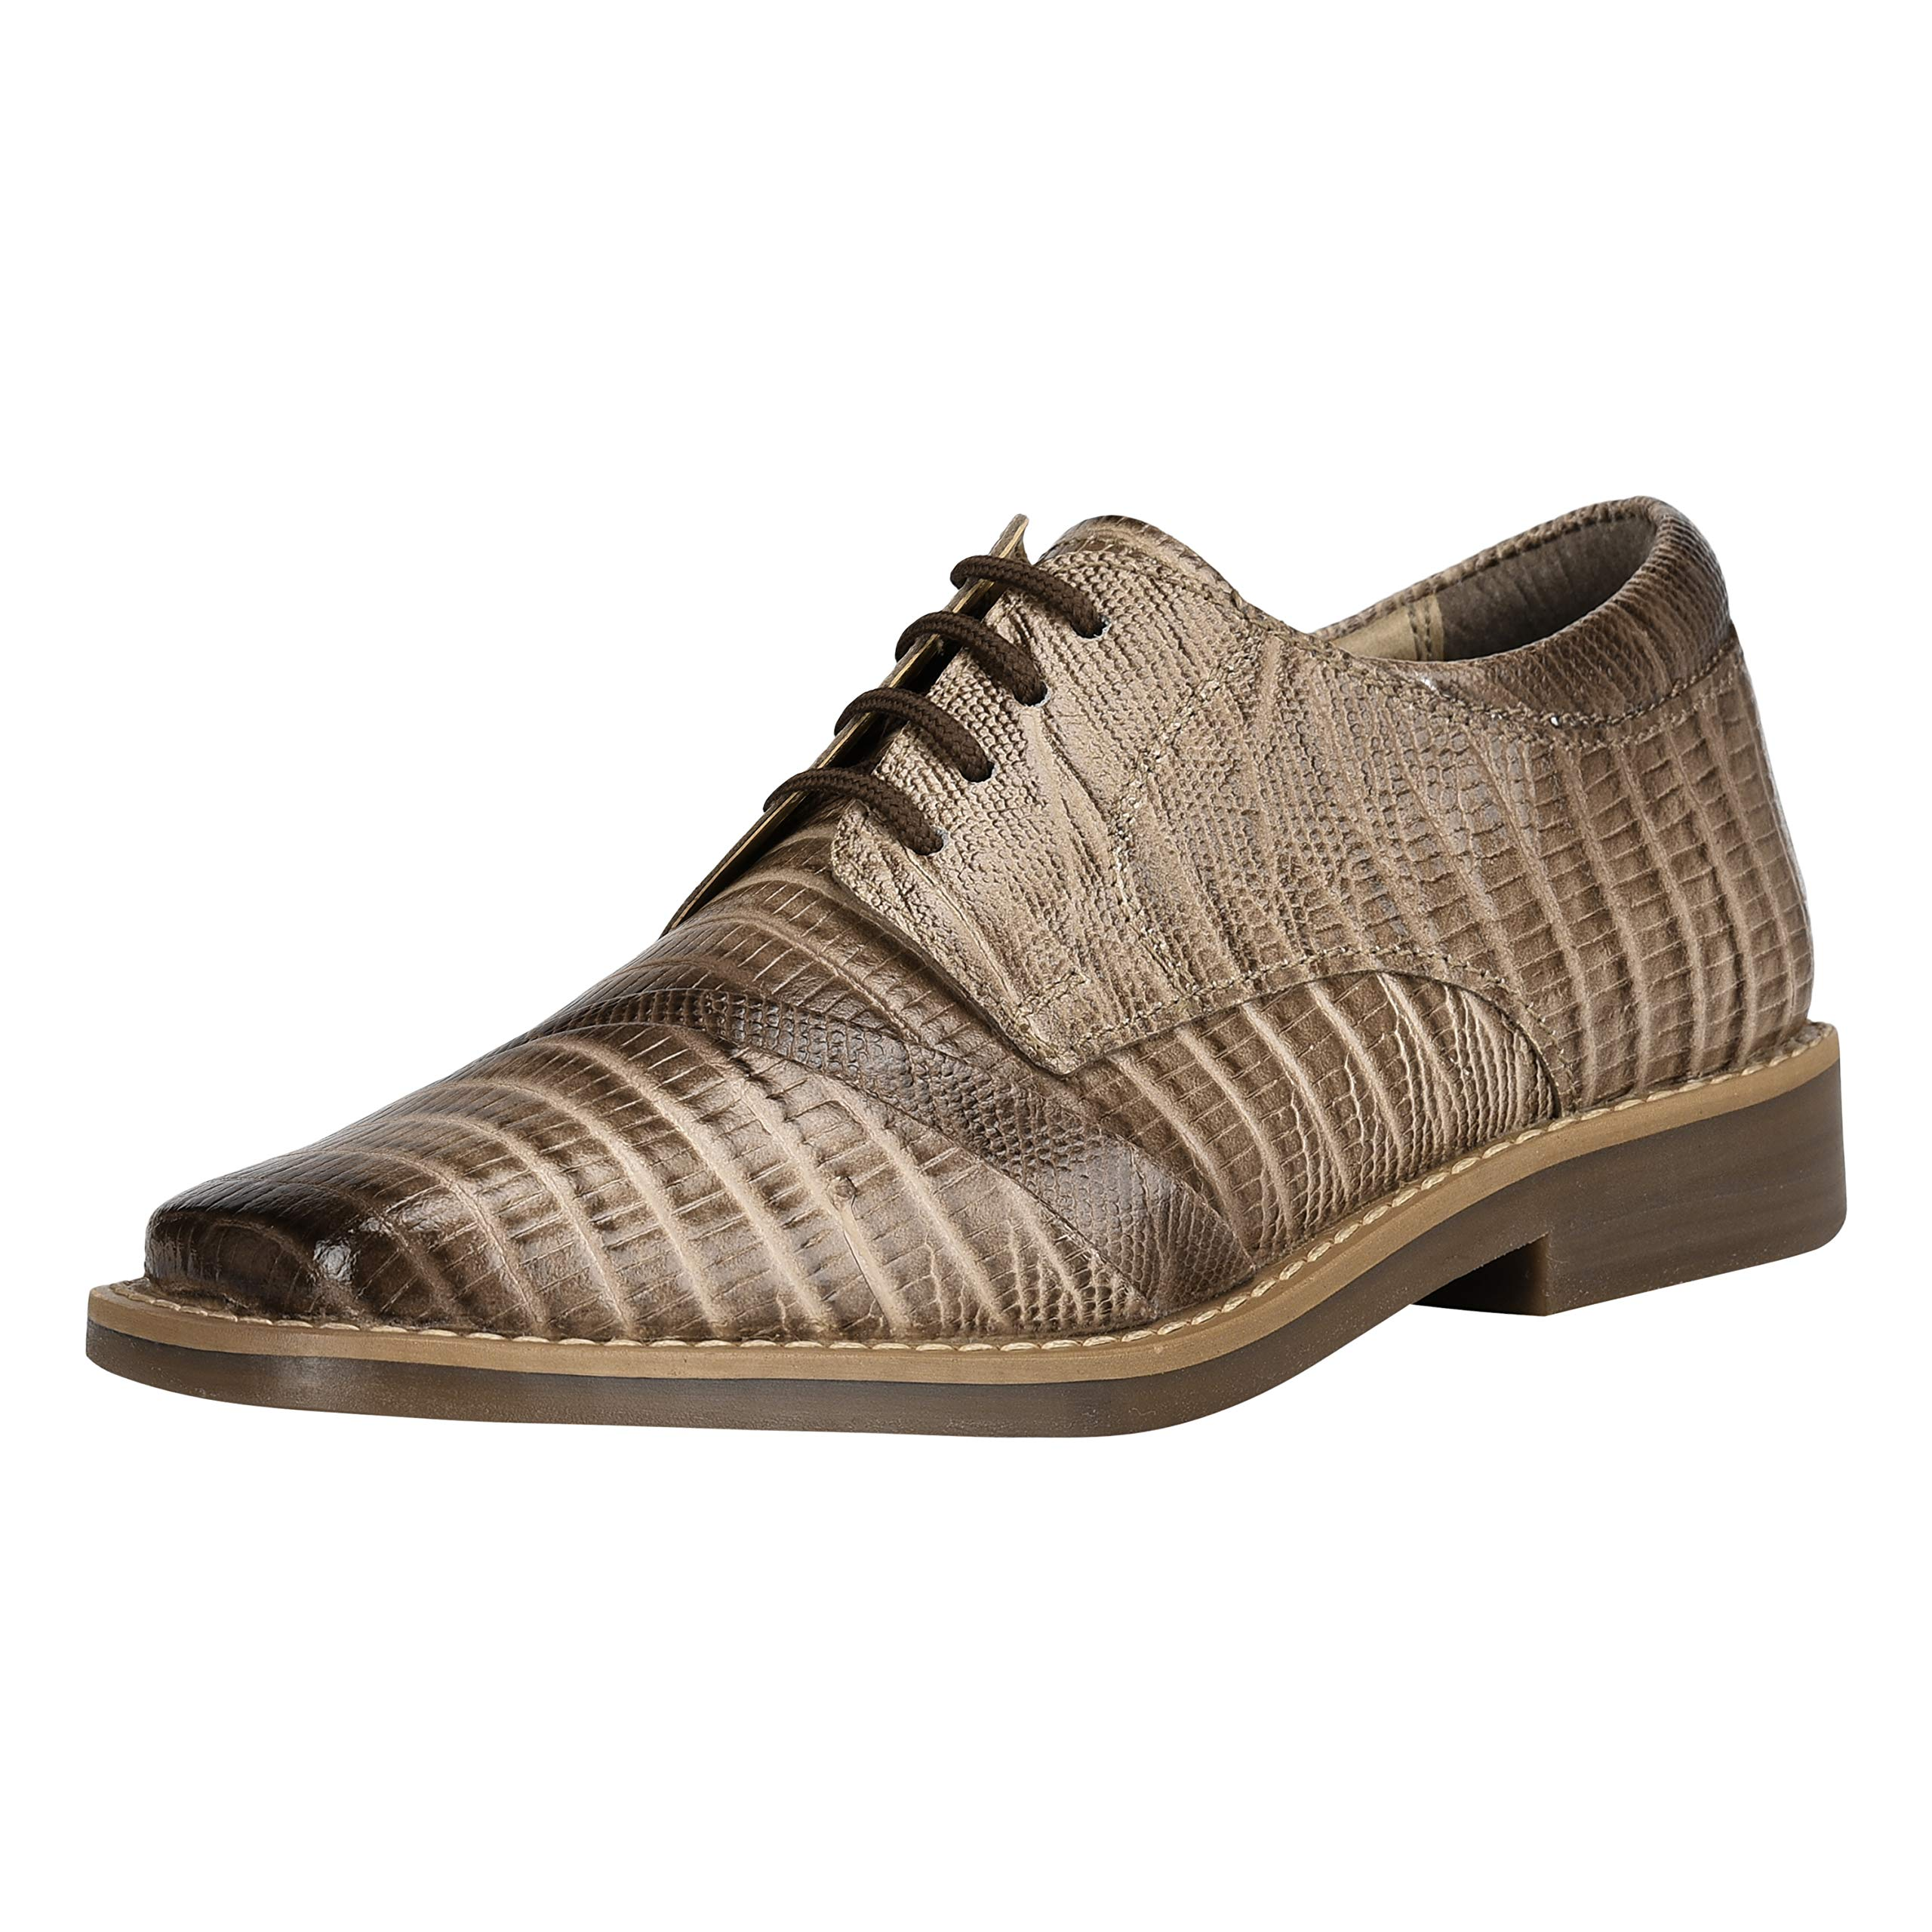 Liberty Boys Gliders Genuine Leather Crocodile Print Lace up Dress Shoes (Size 12 US/Age 4-8 Years/Little Kids, Beige)